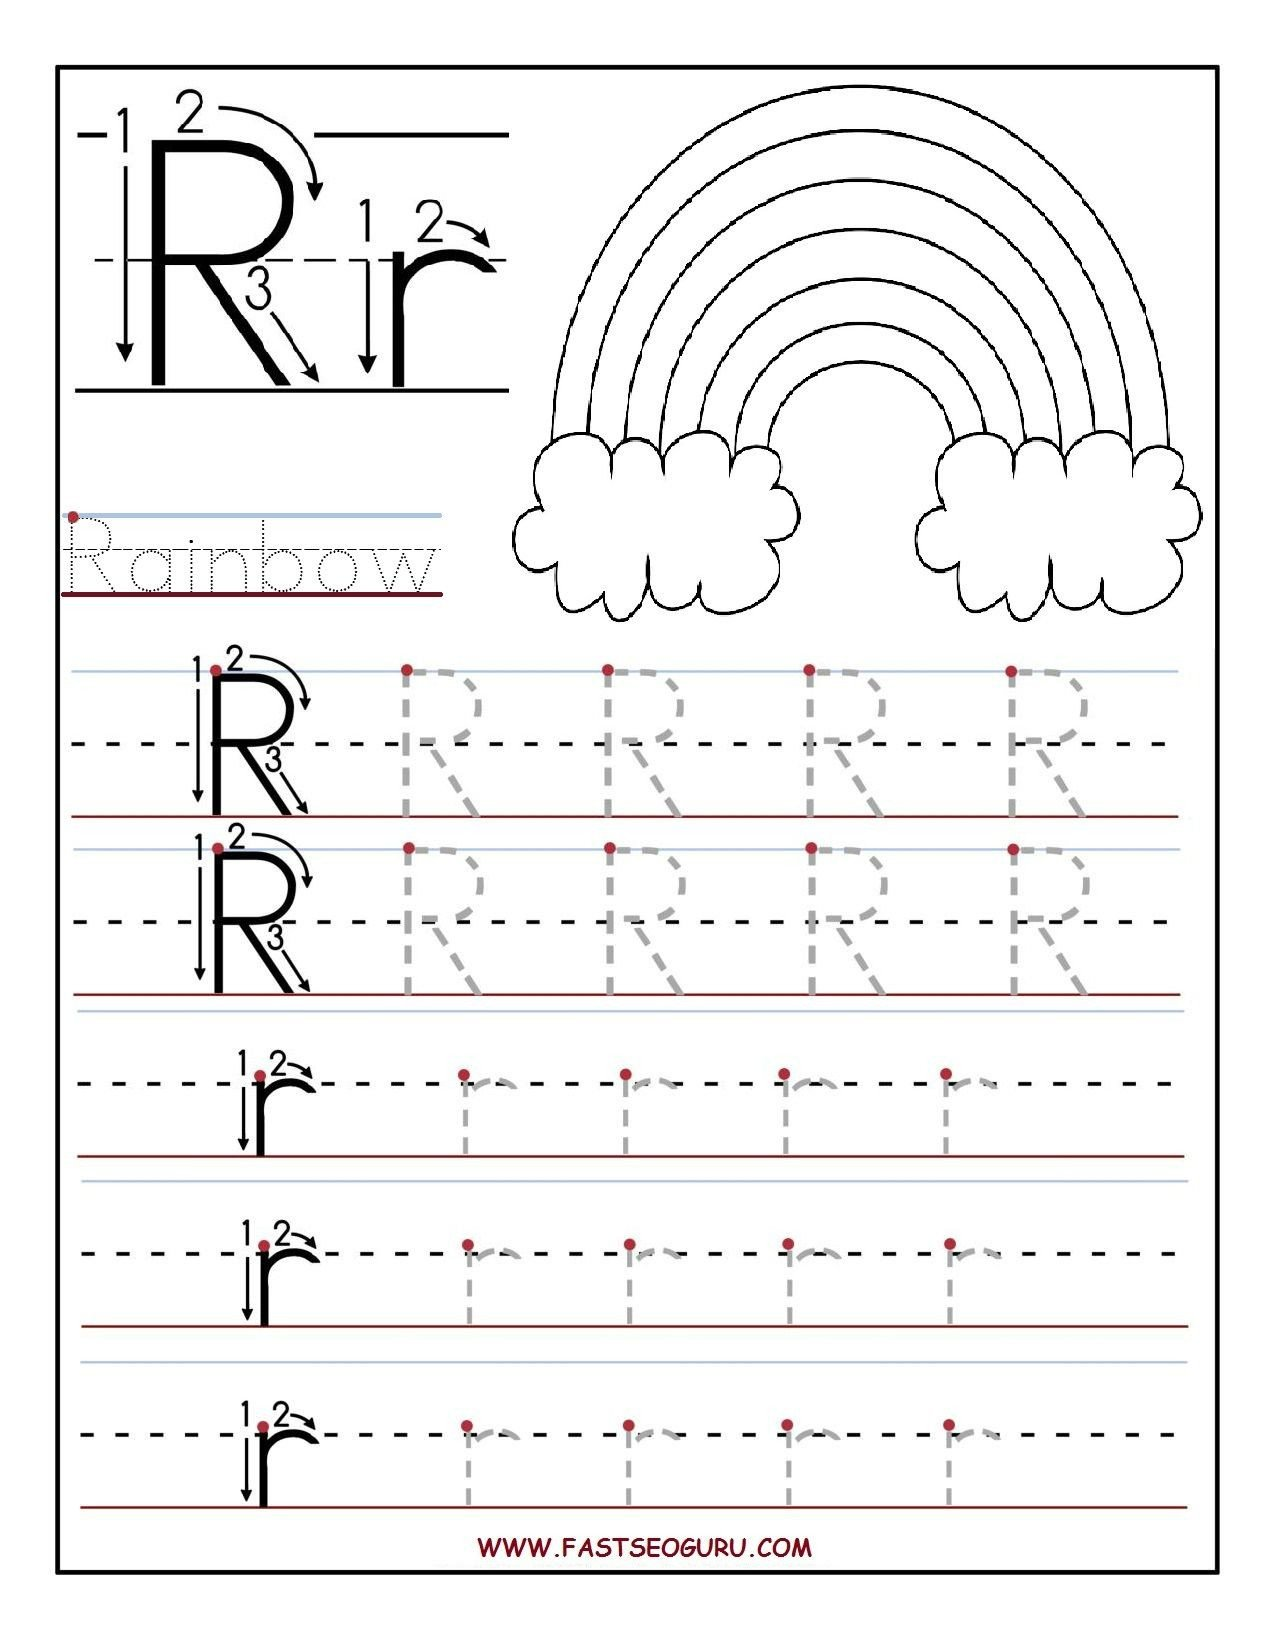 printable letter r tracing worksheets for preschool letter for letter p tracing sheet